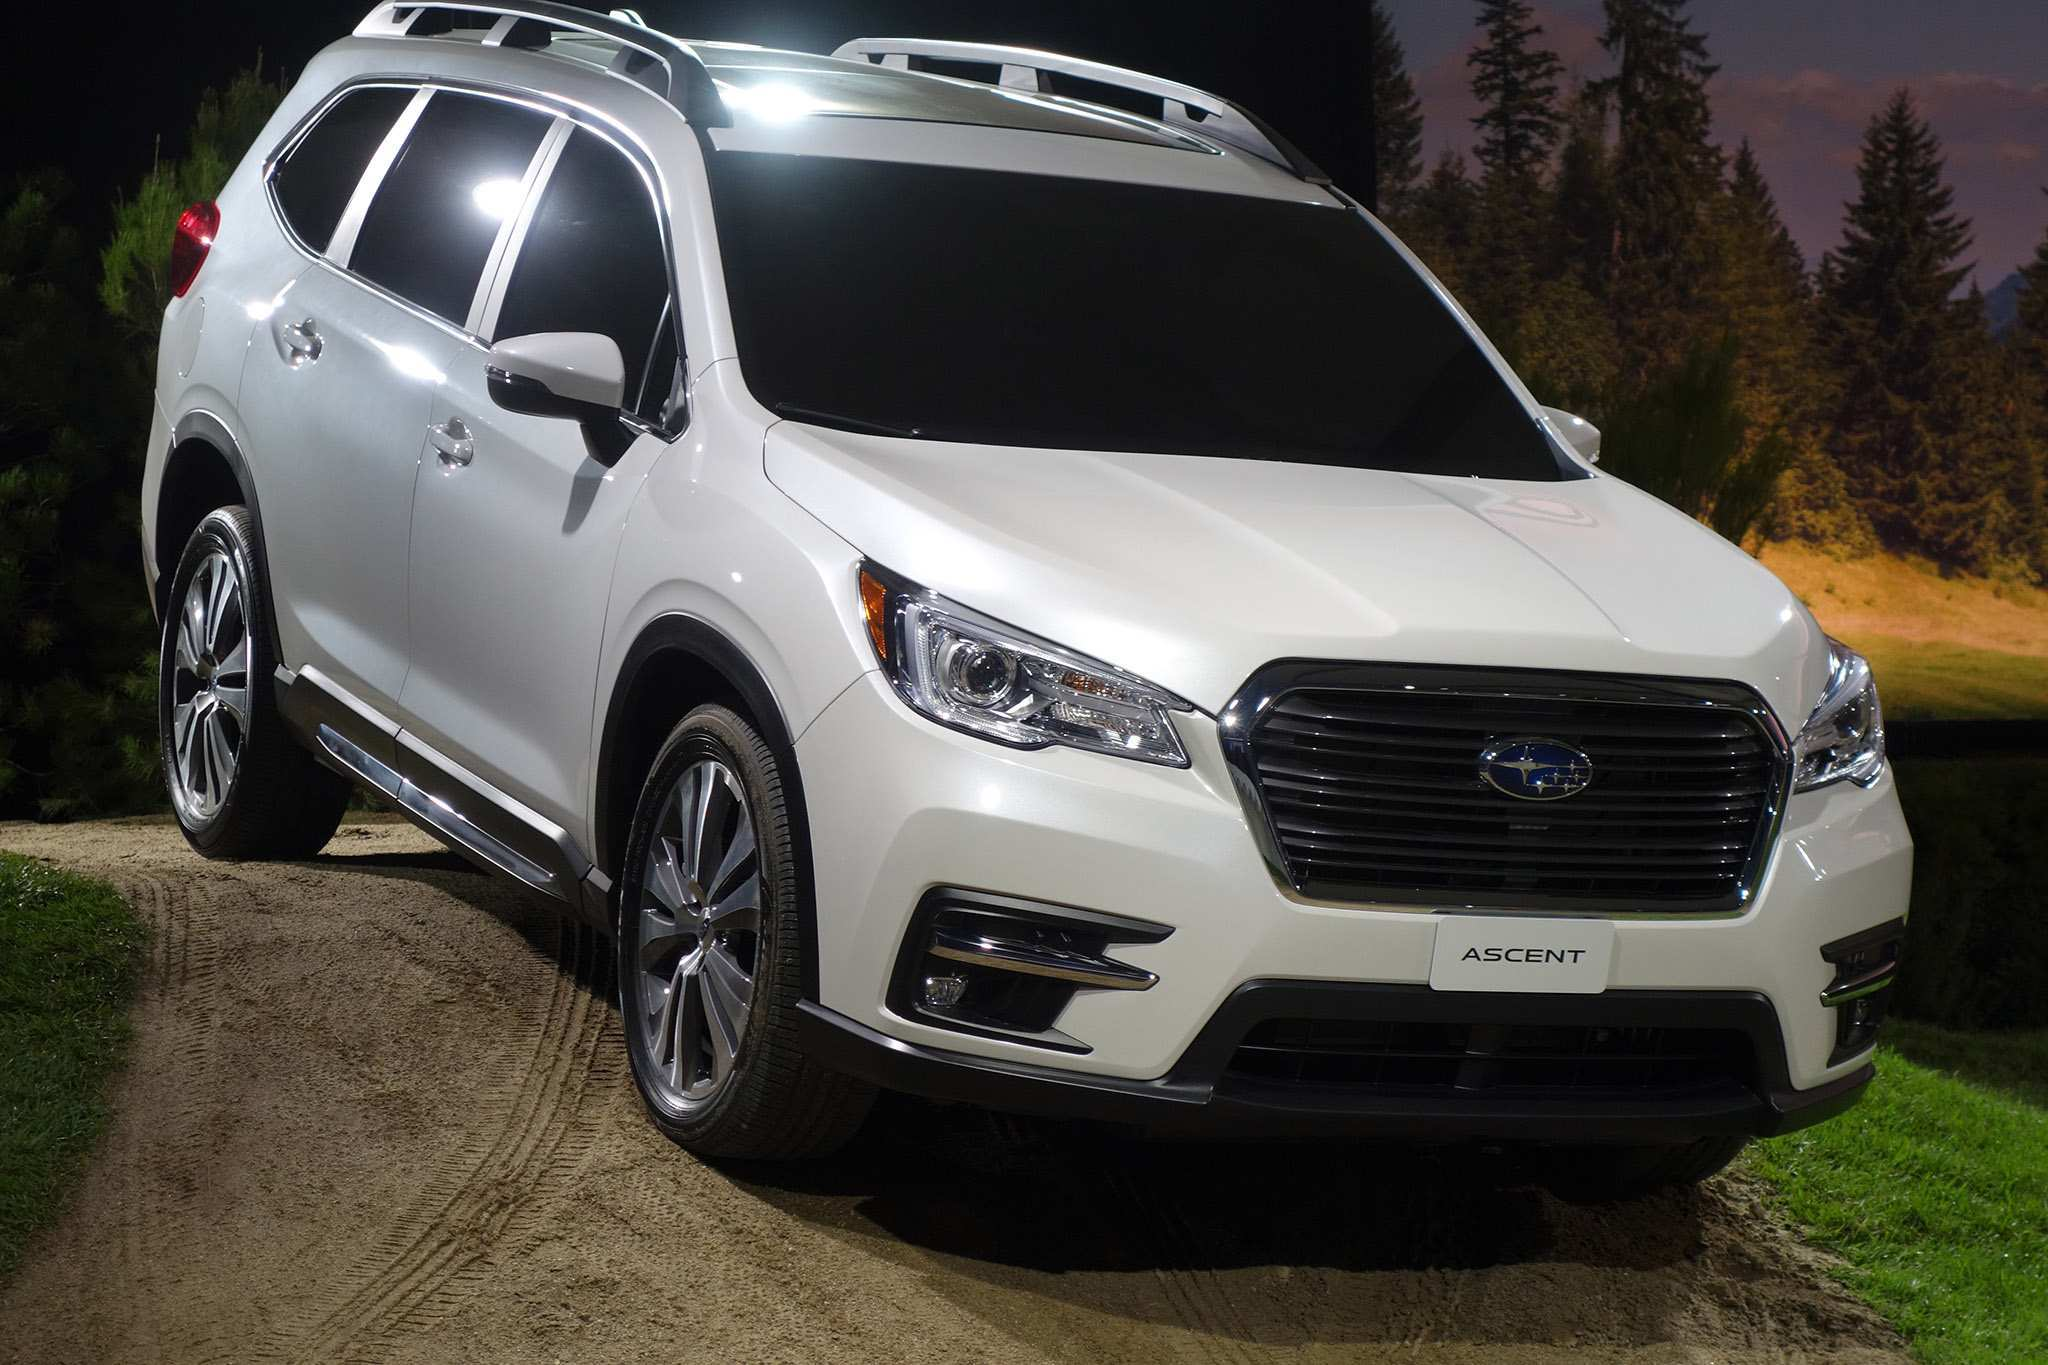 57 Best Review 2019 Subaru Ascent Fuel Economy Redesign and Concept with 2019 Subaru Ascent Fuel Economy